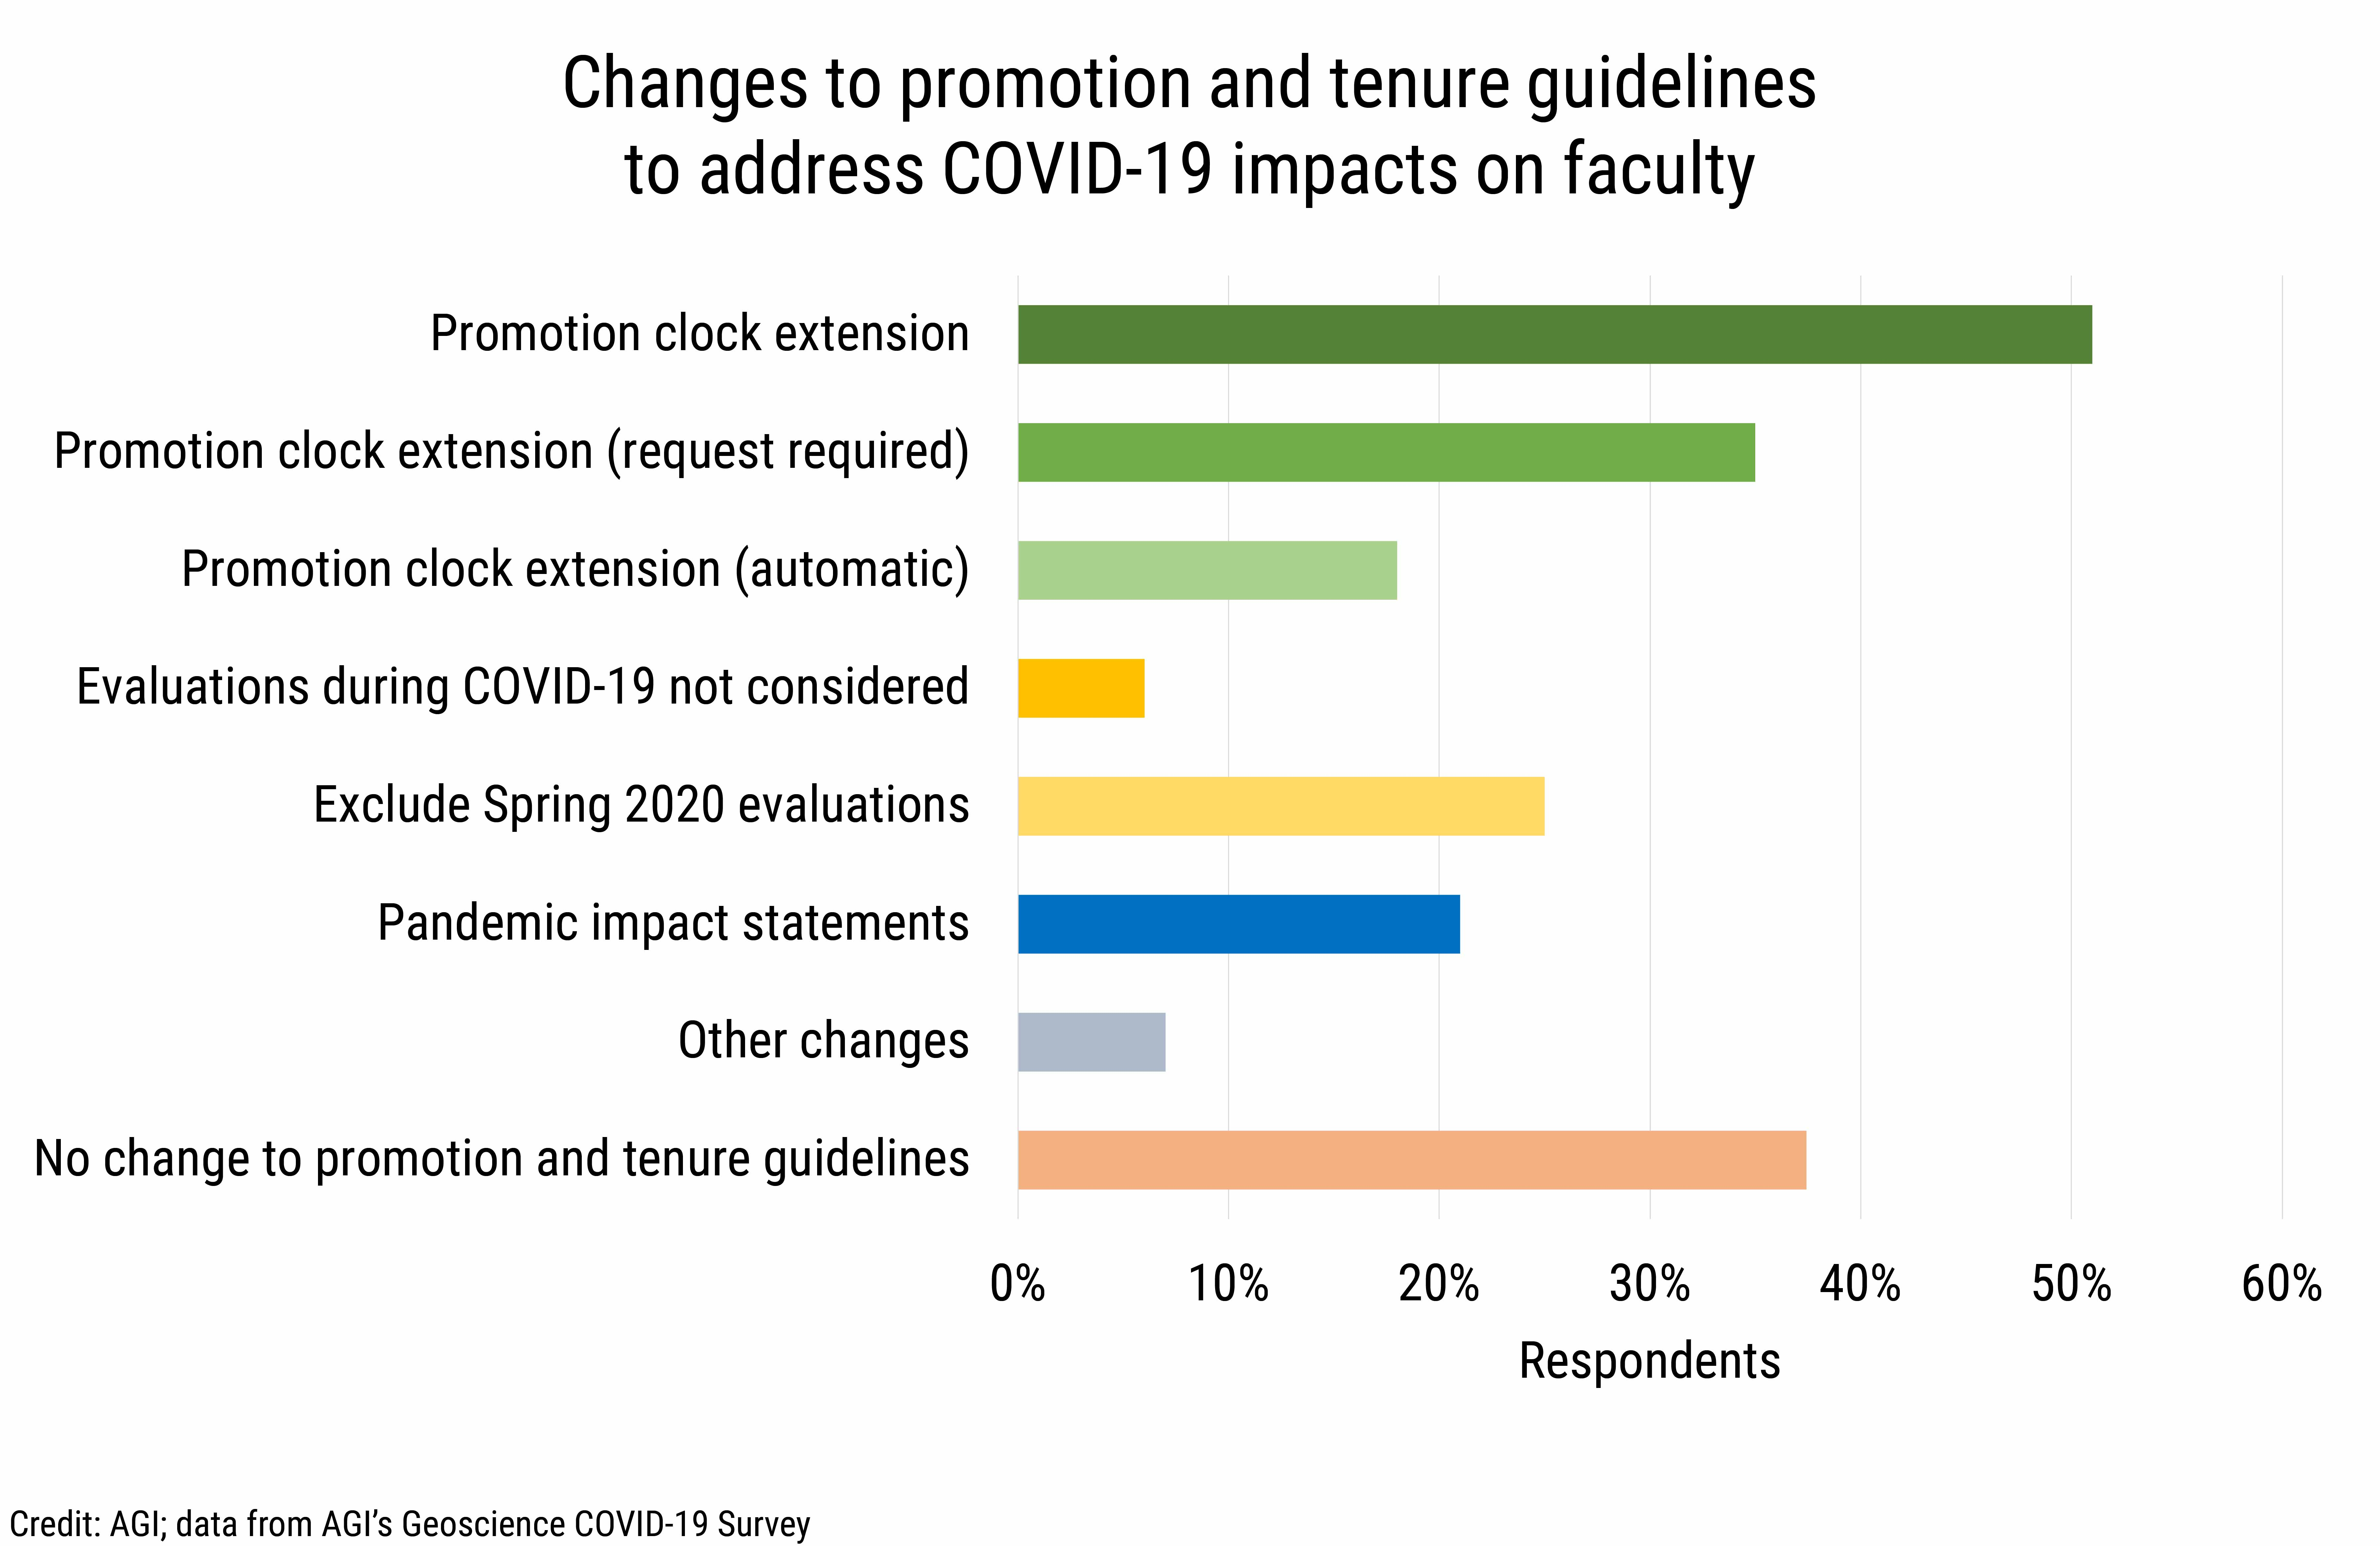 DB_2021-014 chart 08: Changes to promotion and tenure guidelines to address COVID-19 impacts on faculty  (Credit: AGI; data from AGI's Geoscience COVID-19 Survey)